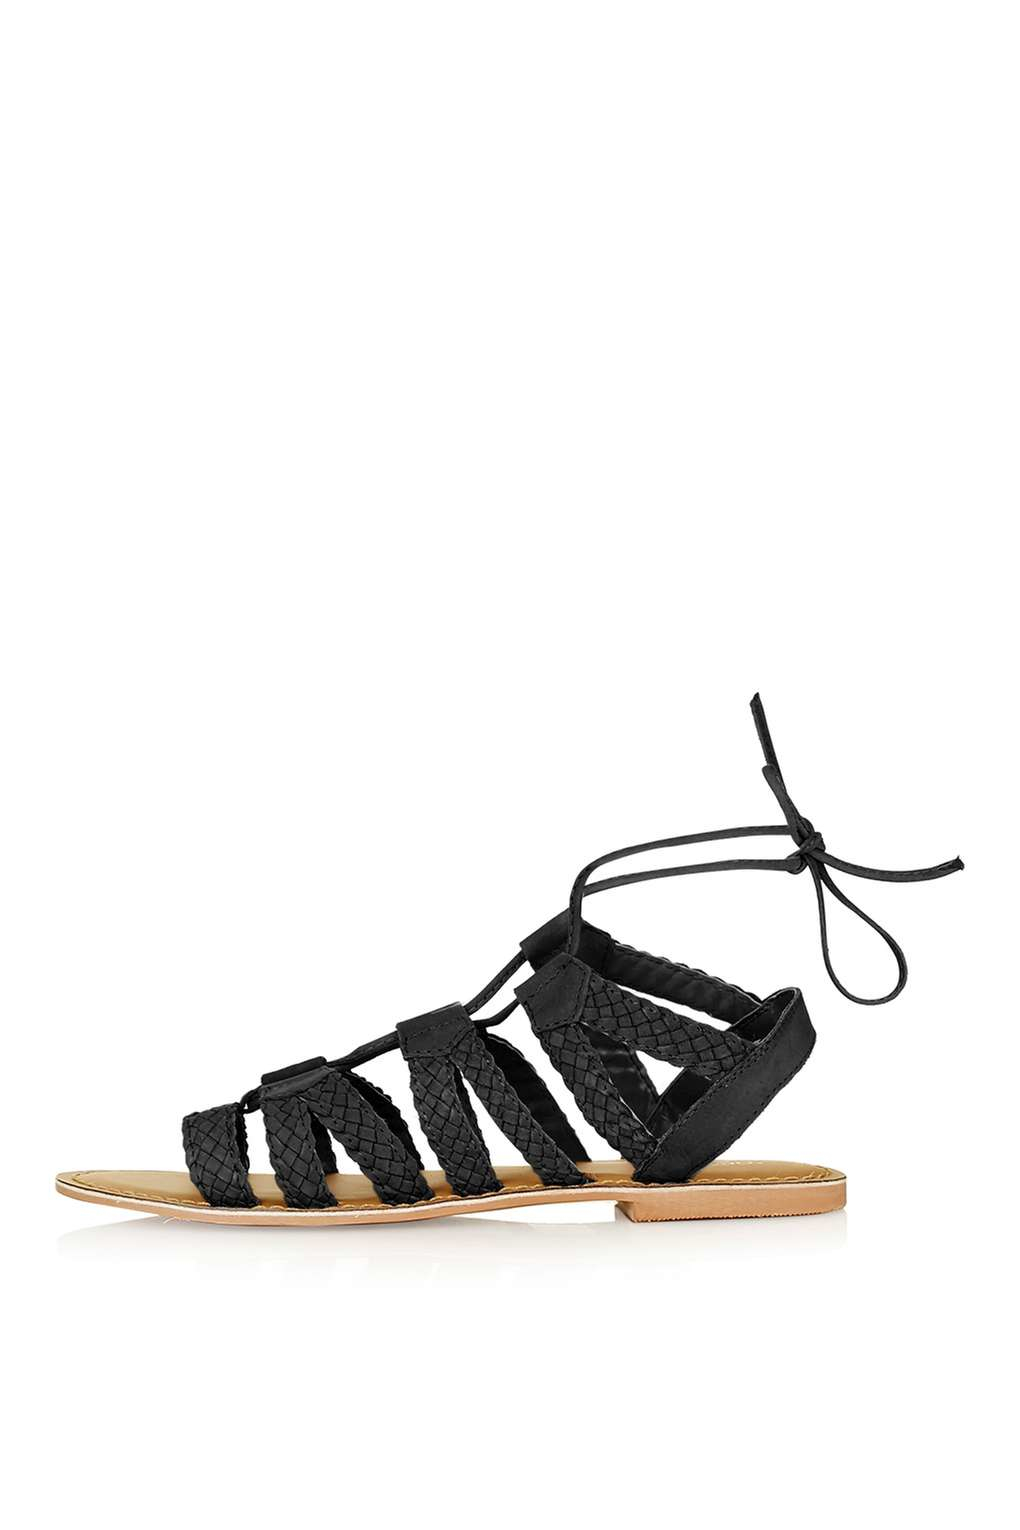 0373e3c9fe79ab Topshop Hiccup Weave Sandal in Black - Lyst